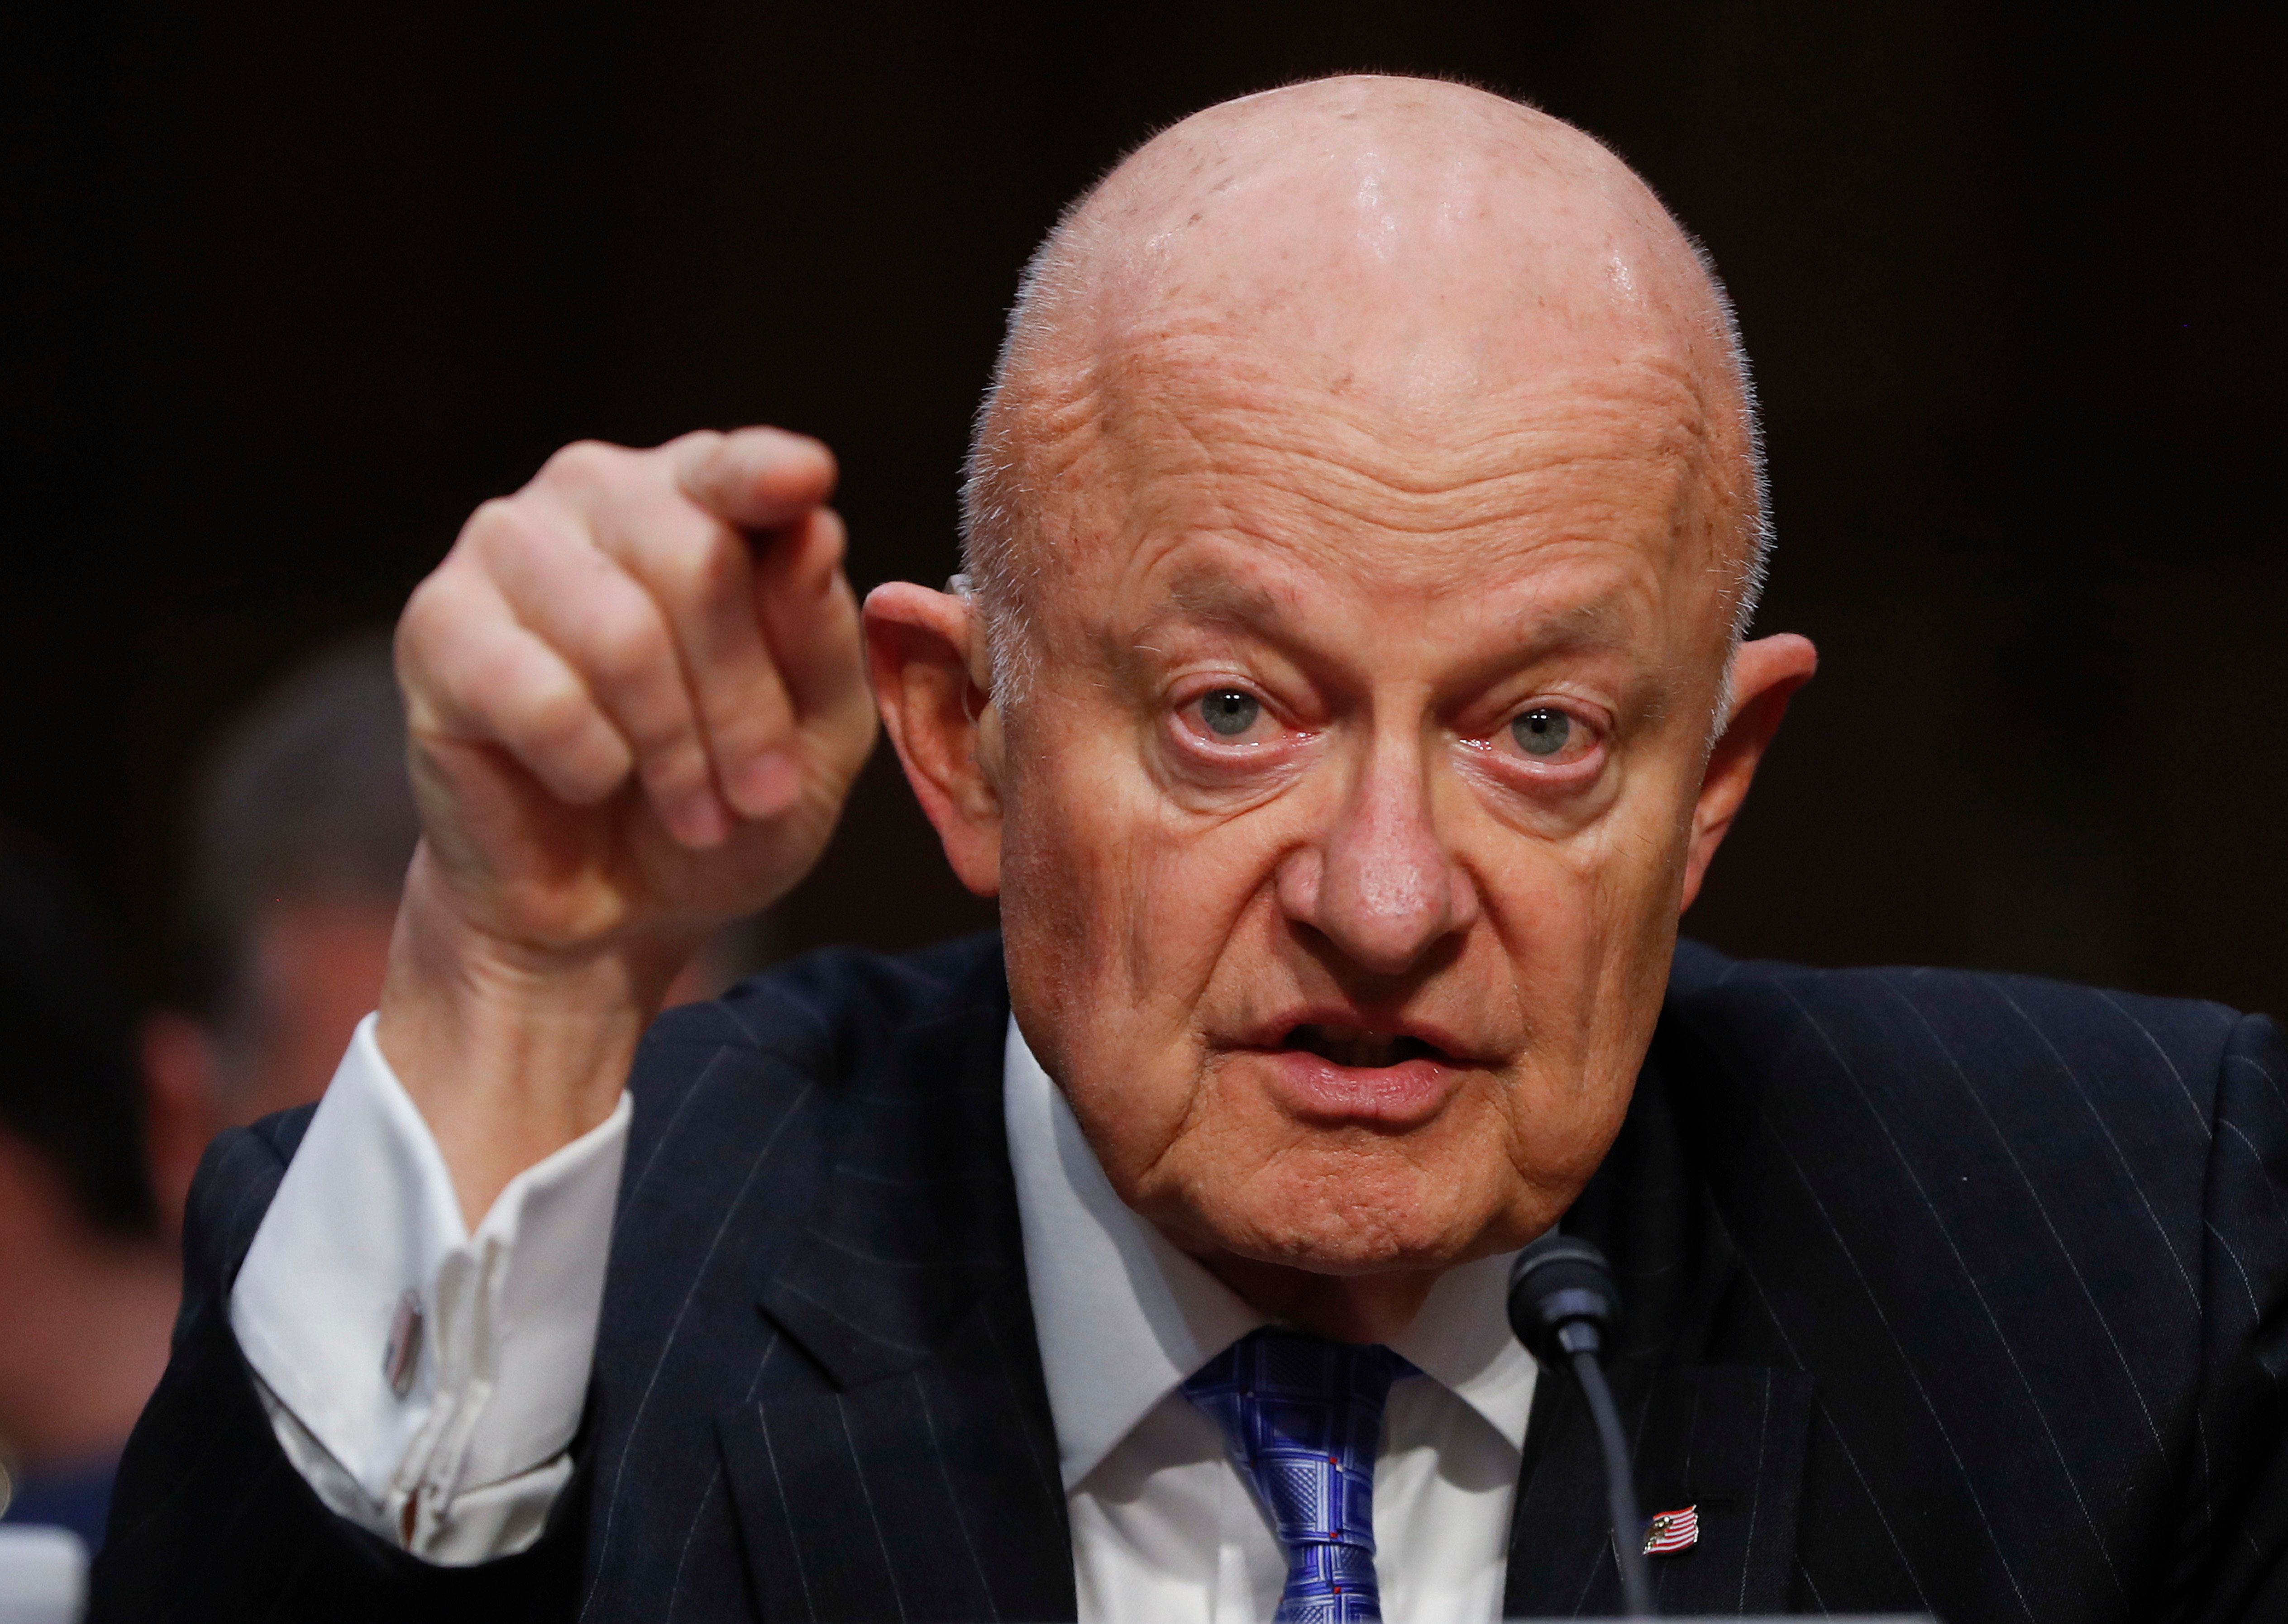 """FILE - In this Monday, May 8, 2017, file photo, former National Intelligence Director James Clapper testifies on Capitol Hill in Washington, before the Senate Judiciary subcommittee on Crime and Terrorism hearing: """"Russian Interference in the 2016 United States Election."""" Clapper on Sunday, May 14, described a U.S. government """"under assault"""" after President Donald Trump's controversial decision to fire FBI director James Comey, as lawmakers urged the president to select a new FBI director free of any political stigma. (AP Photo/Pablo Martinez Monsivais, File)"""